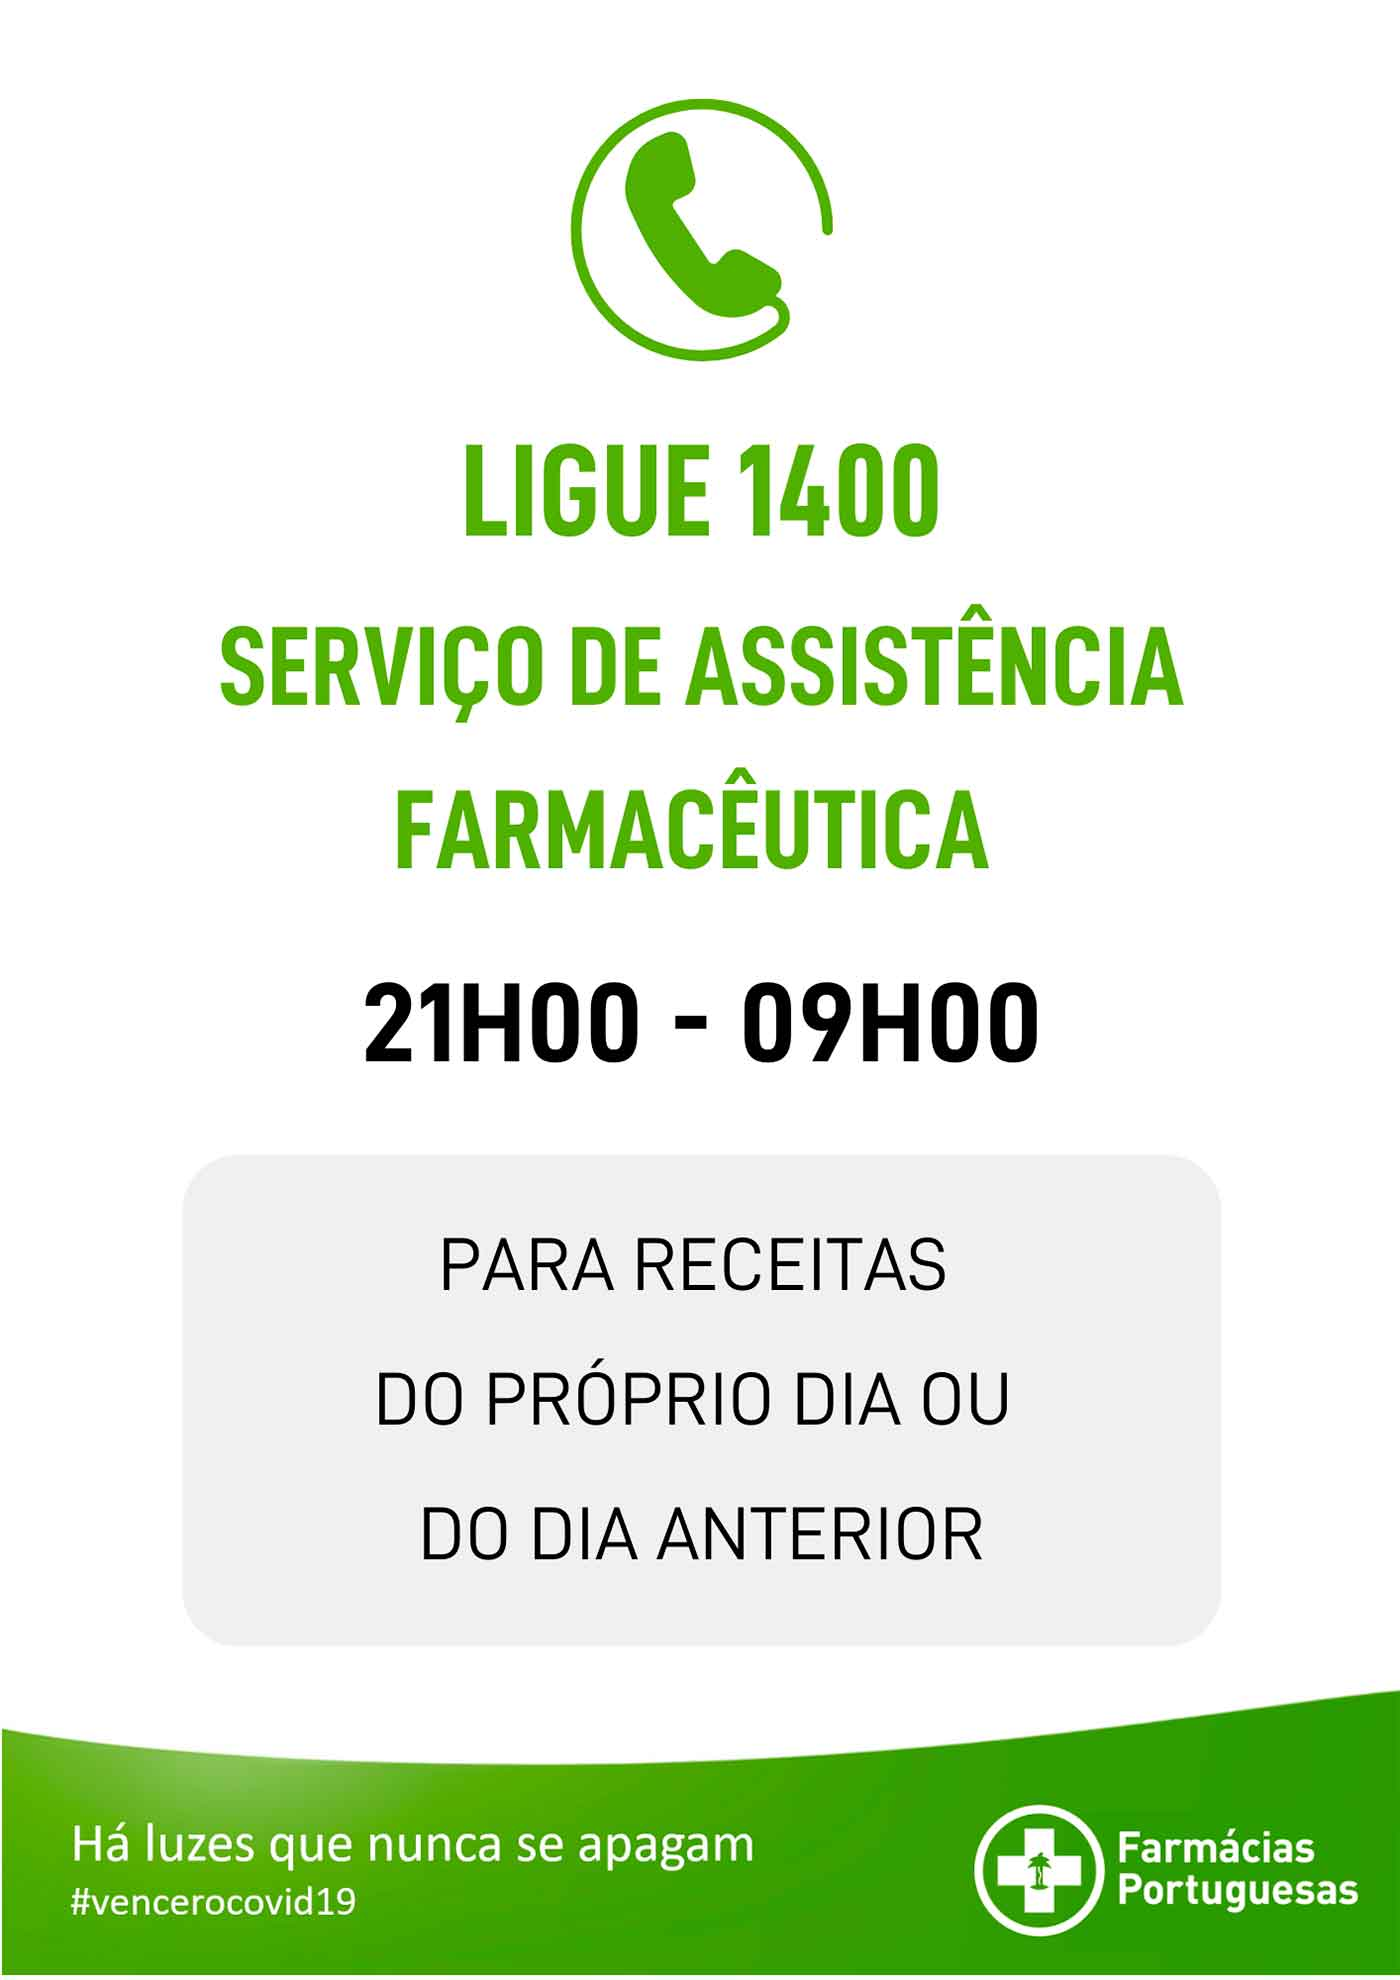 Farmácias-ligue-1400